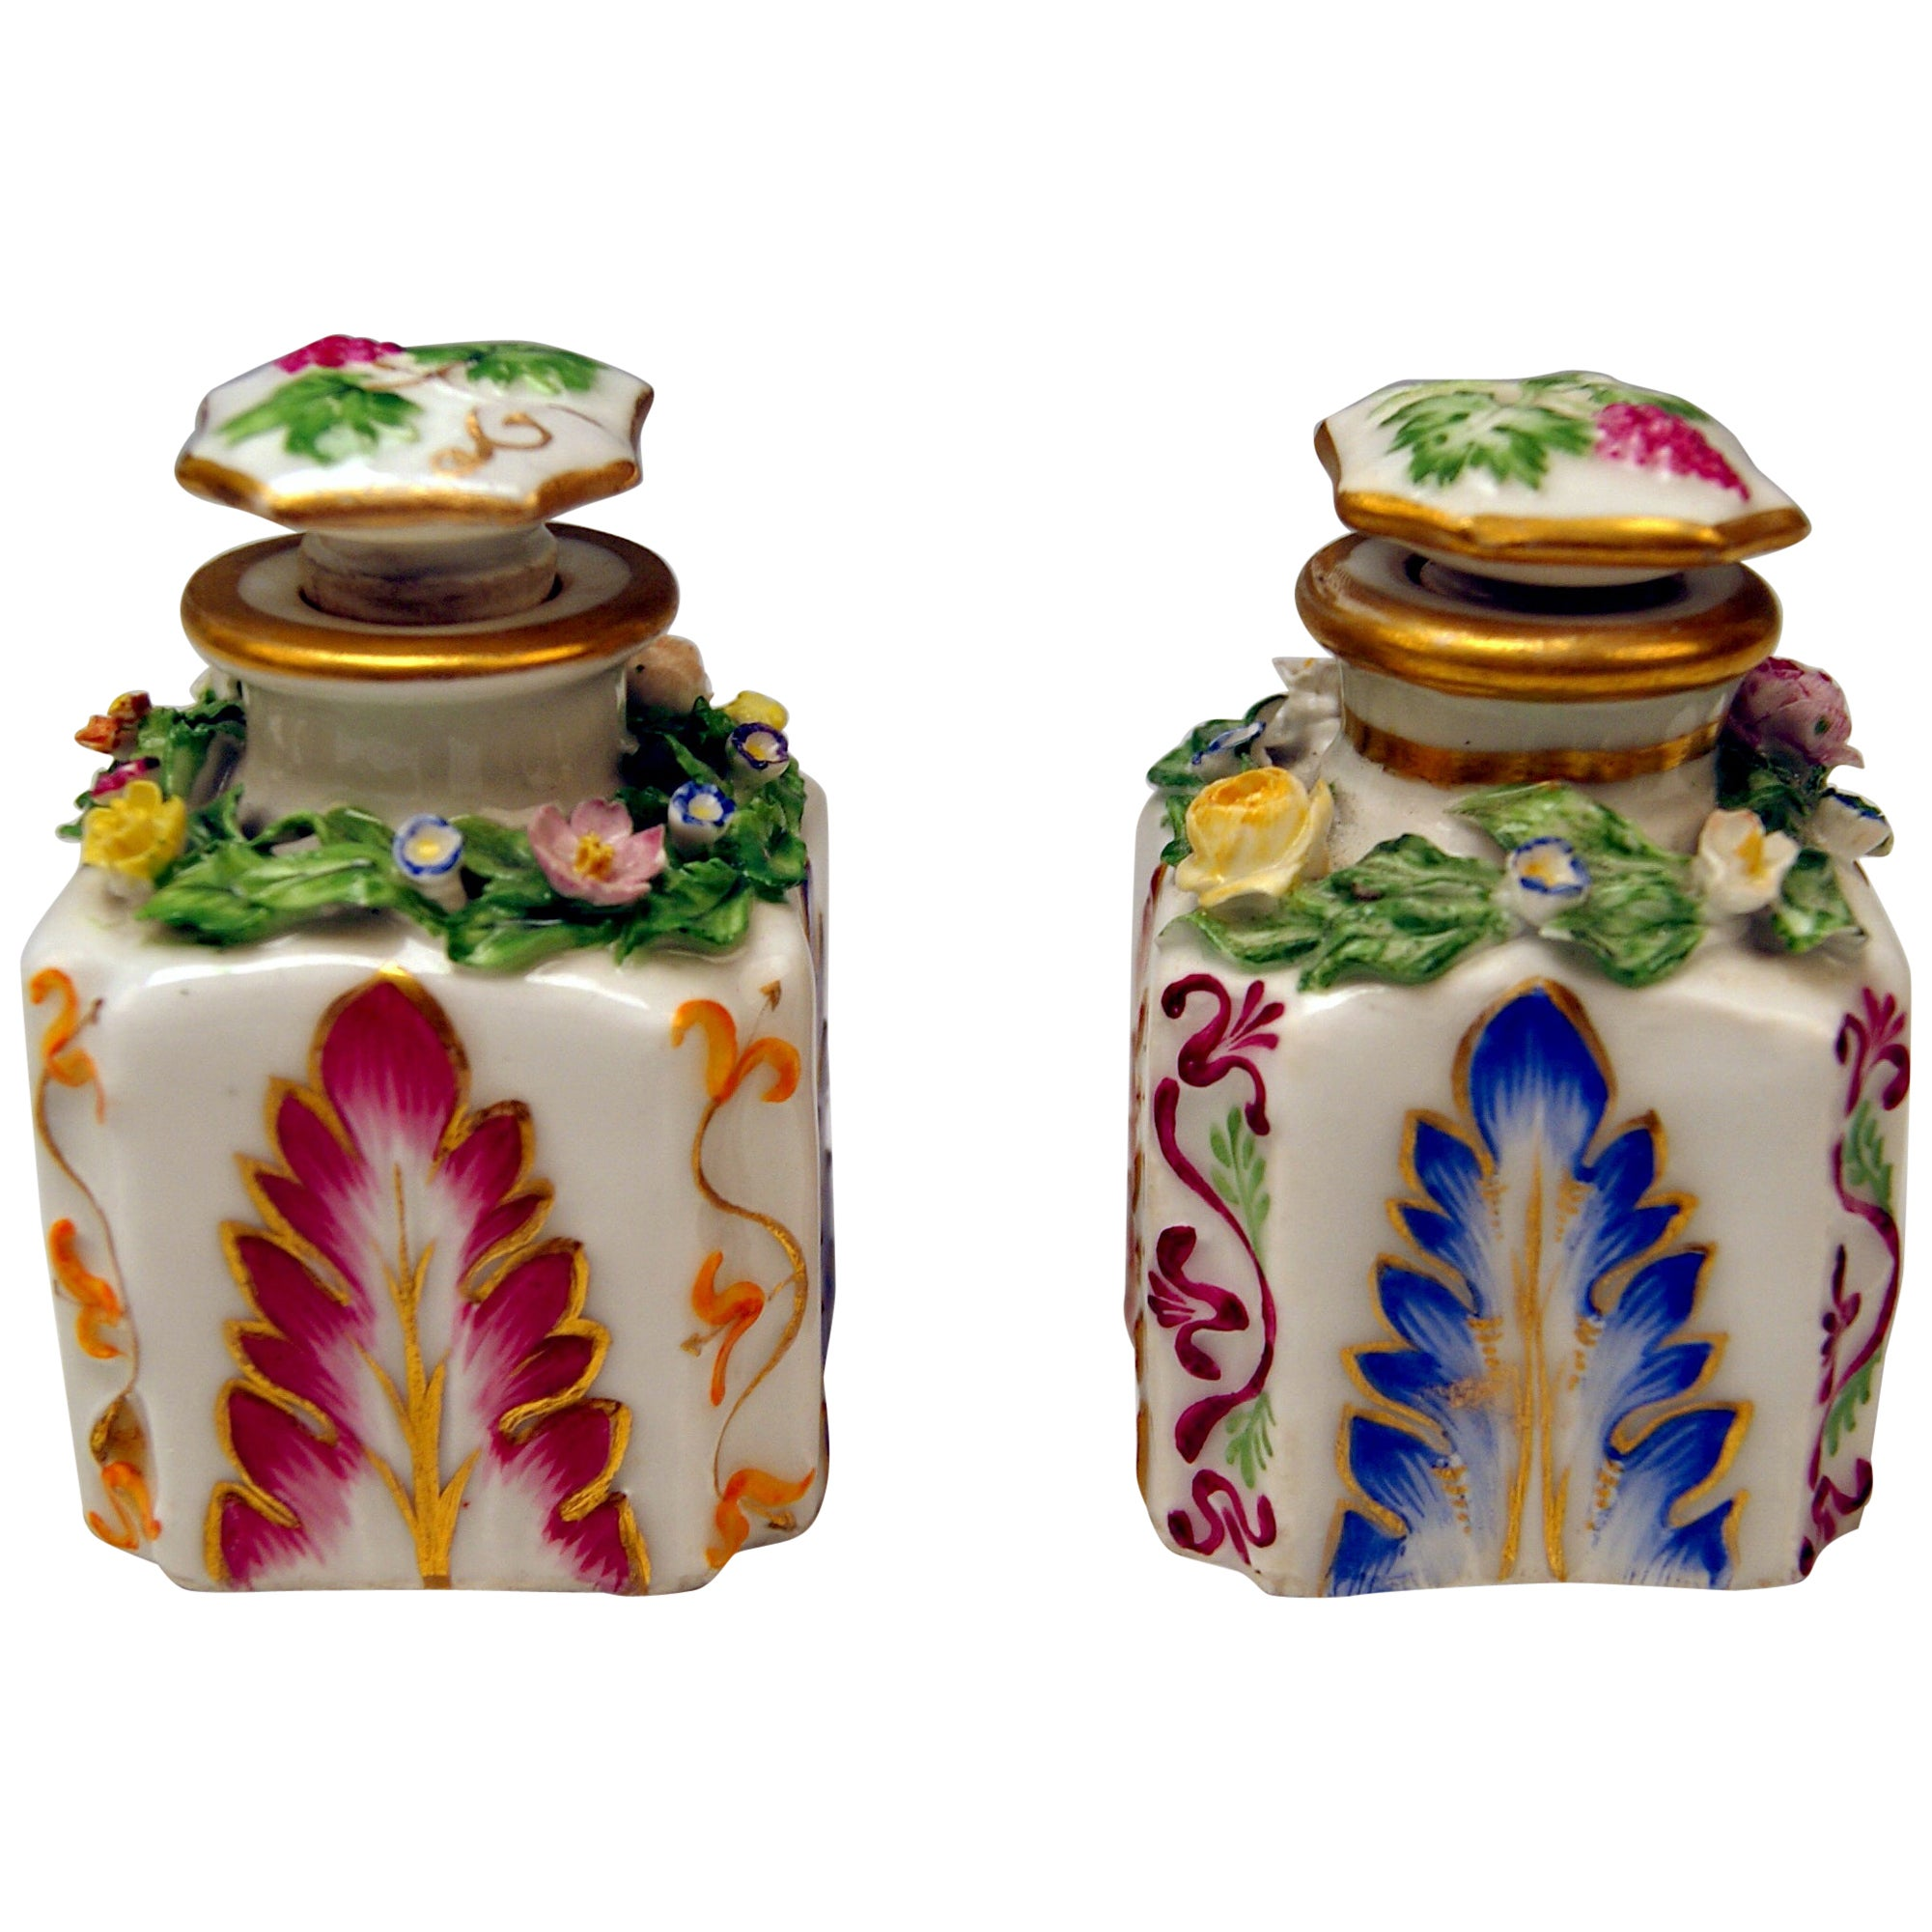 Vienna Imperial Porcelain Pair of Flacons Painted Austria Vienna 1841 and 1844